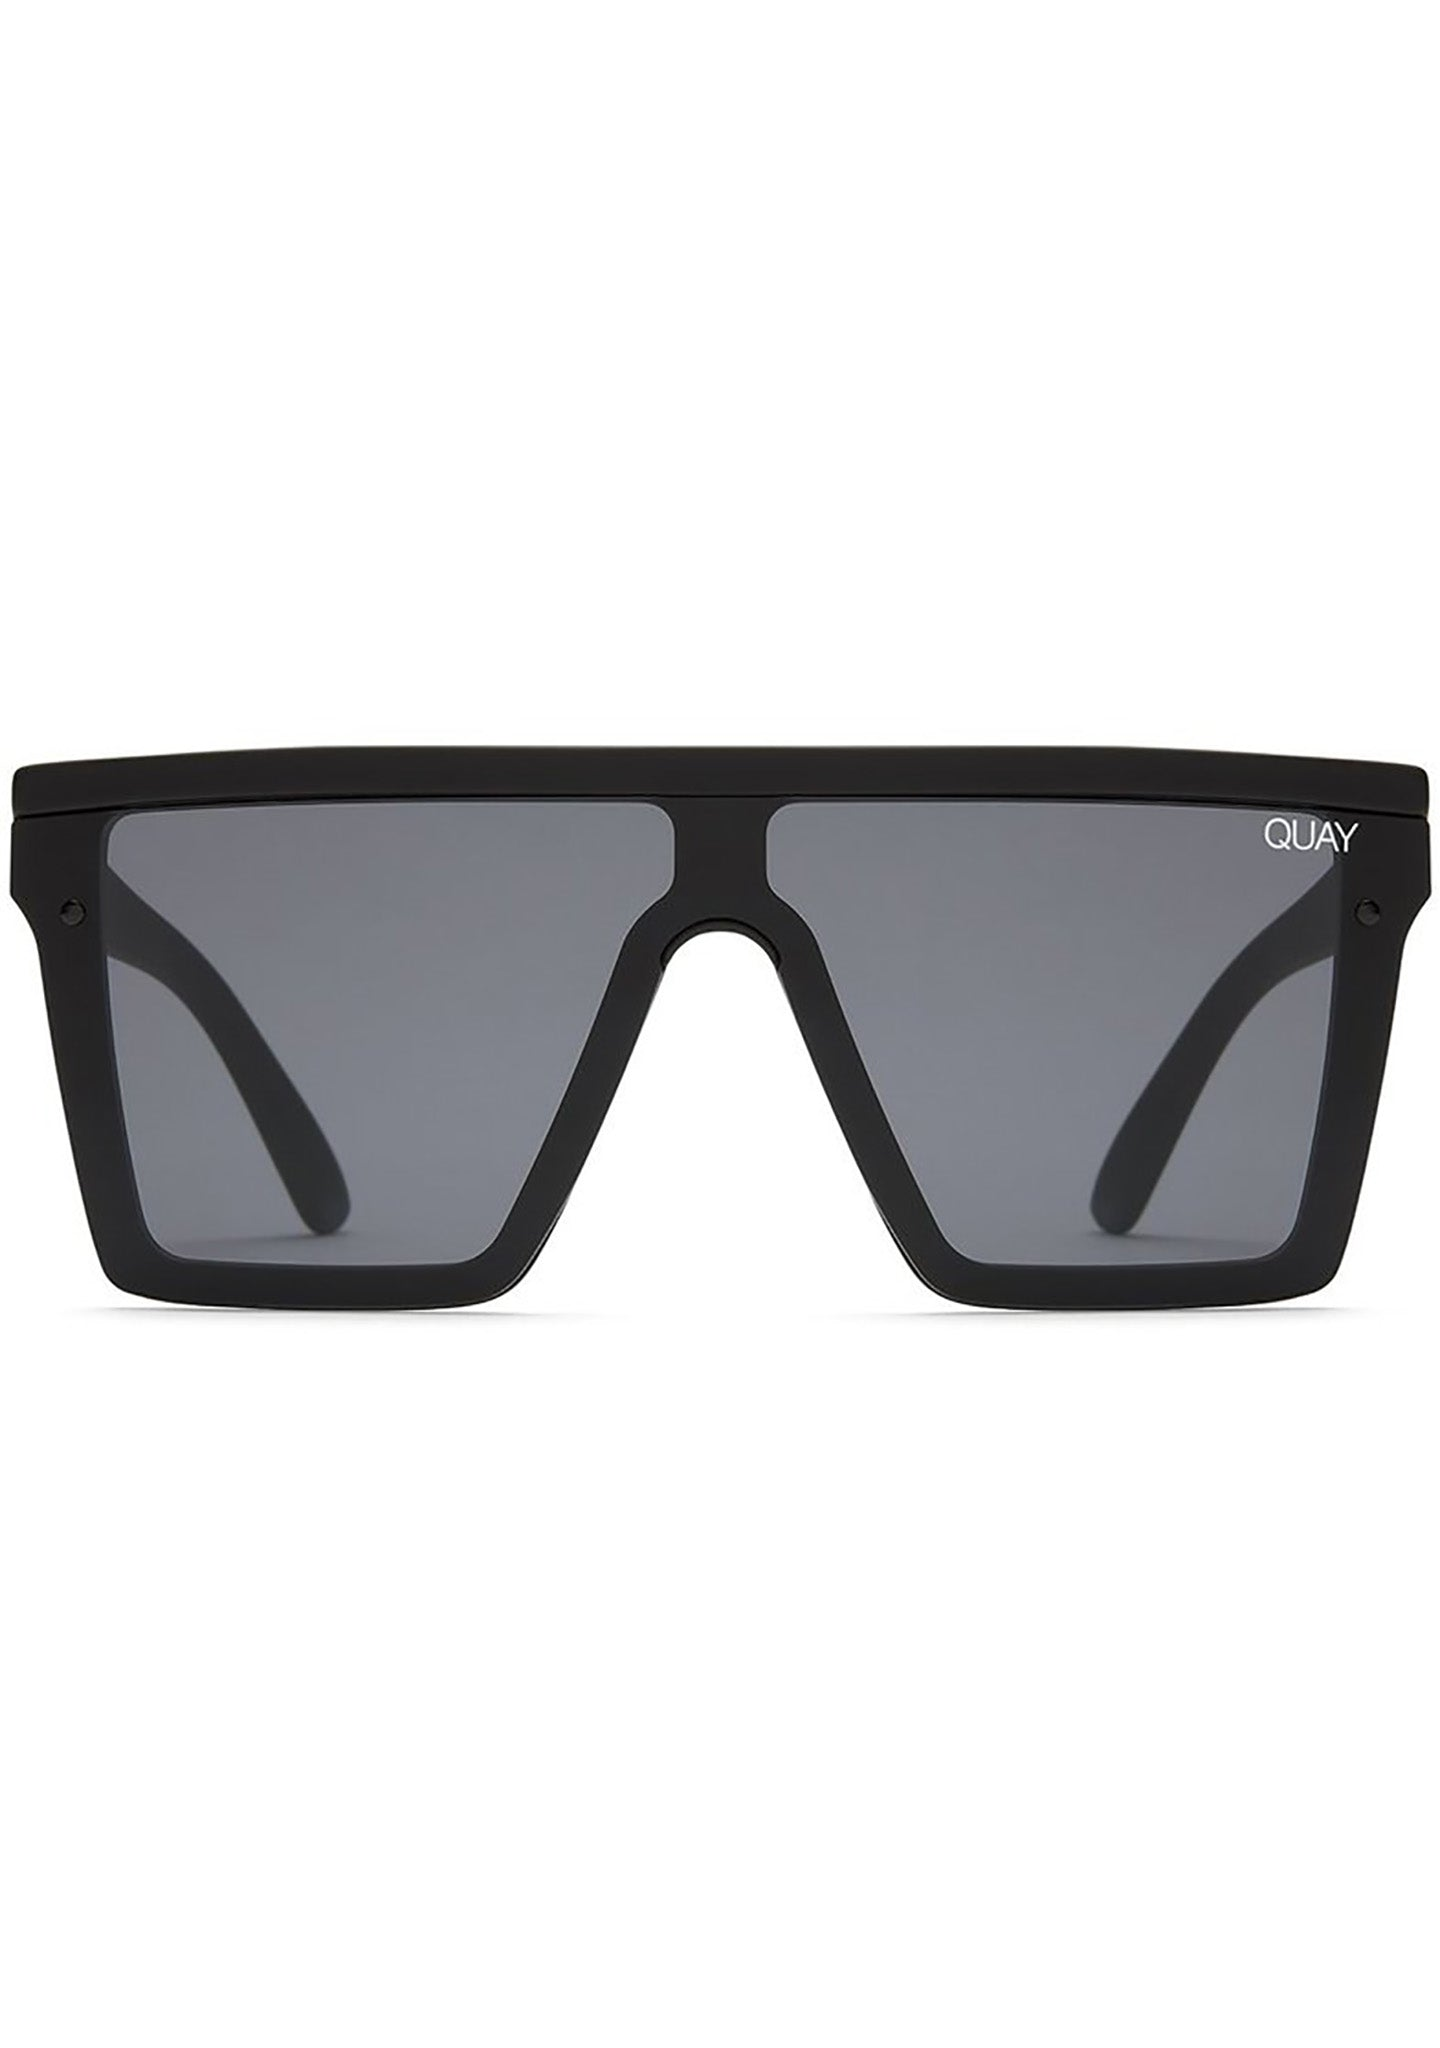 Hindsight Sunglasses in Black/Smoke